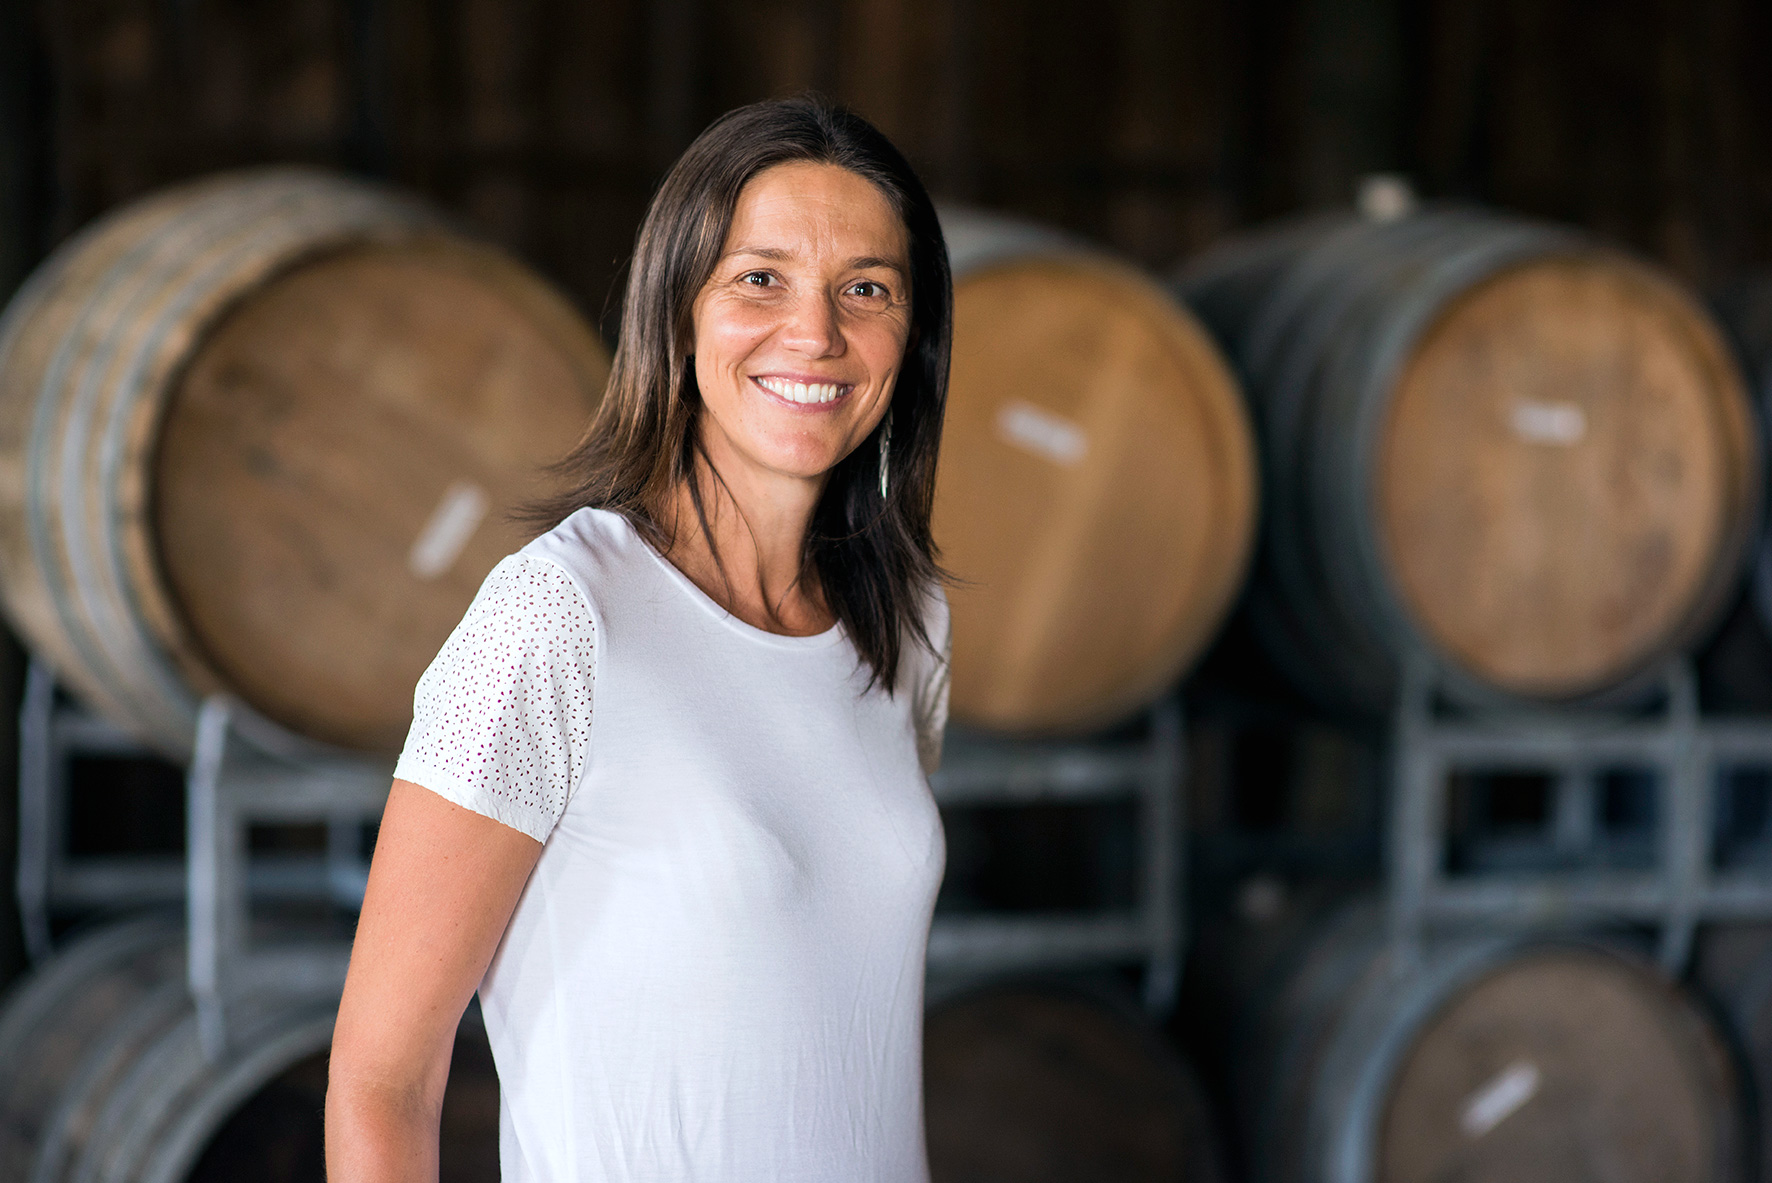 Kirsten Searle, owner of Matawhero Wines posing in front of wine barrels